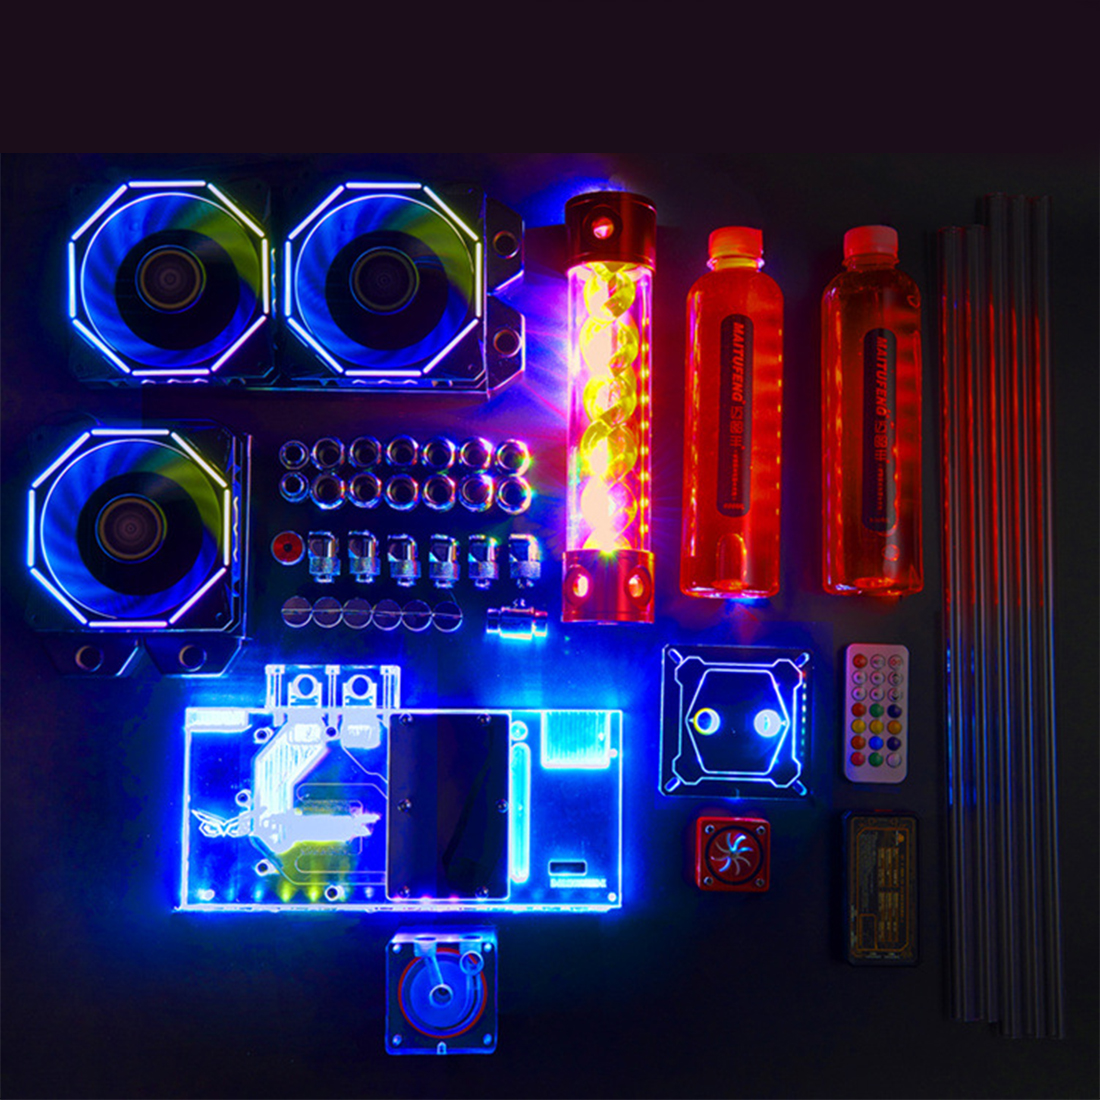 Hot Computer Case Radiator Water Cooling System Water Cooler DIY RGBL Water-Cooled Hard Pipe Set (Double Copper Bar 240 + 120)